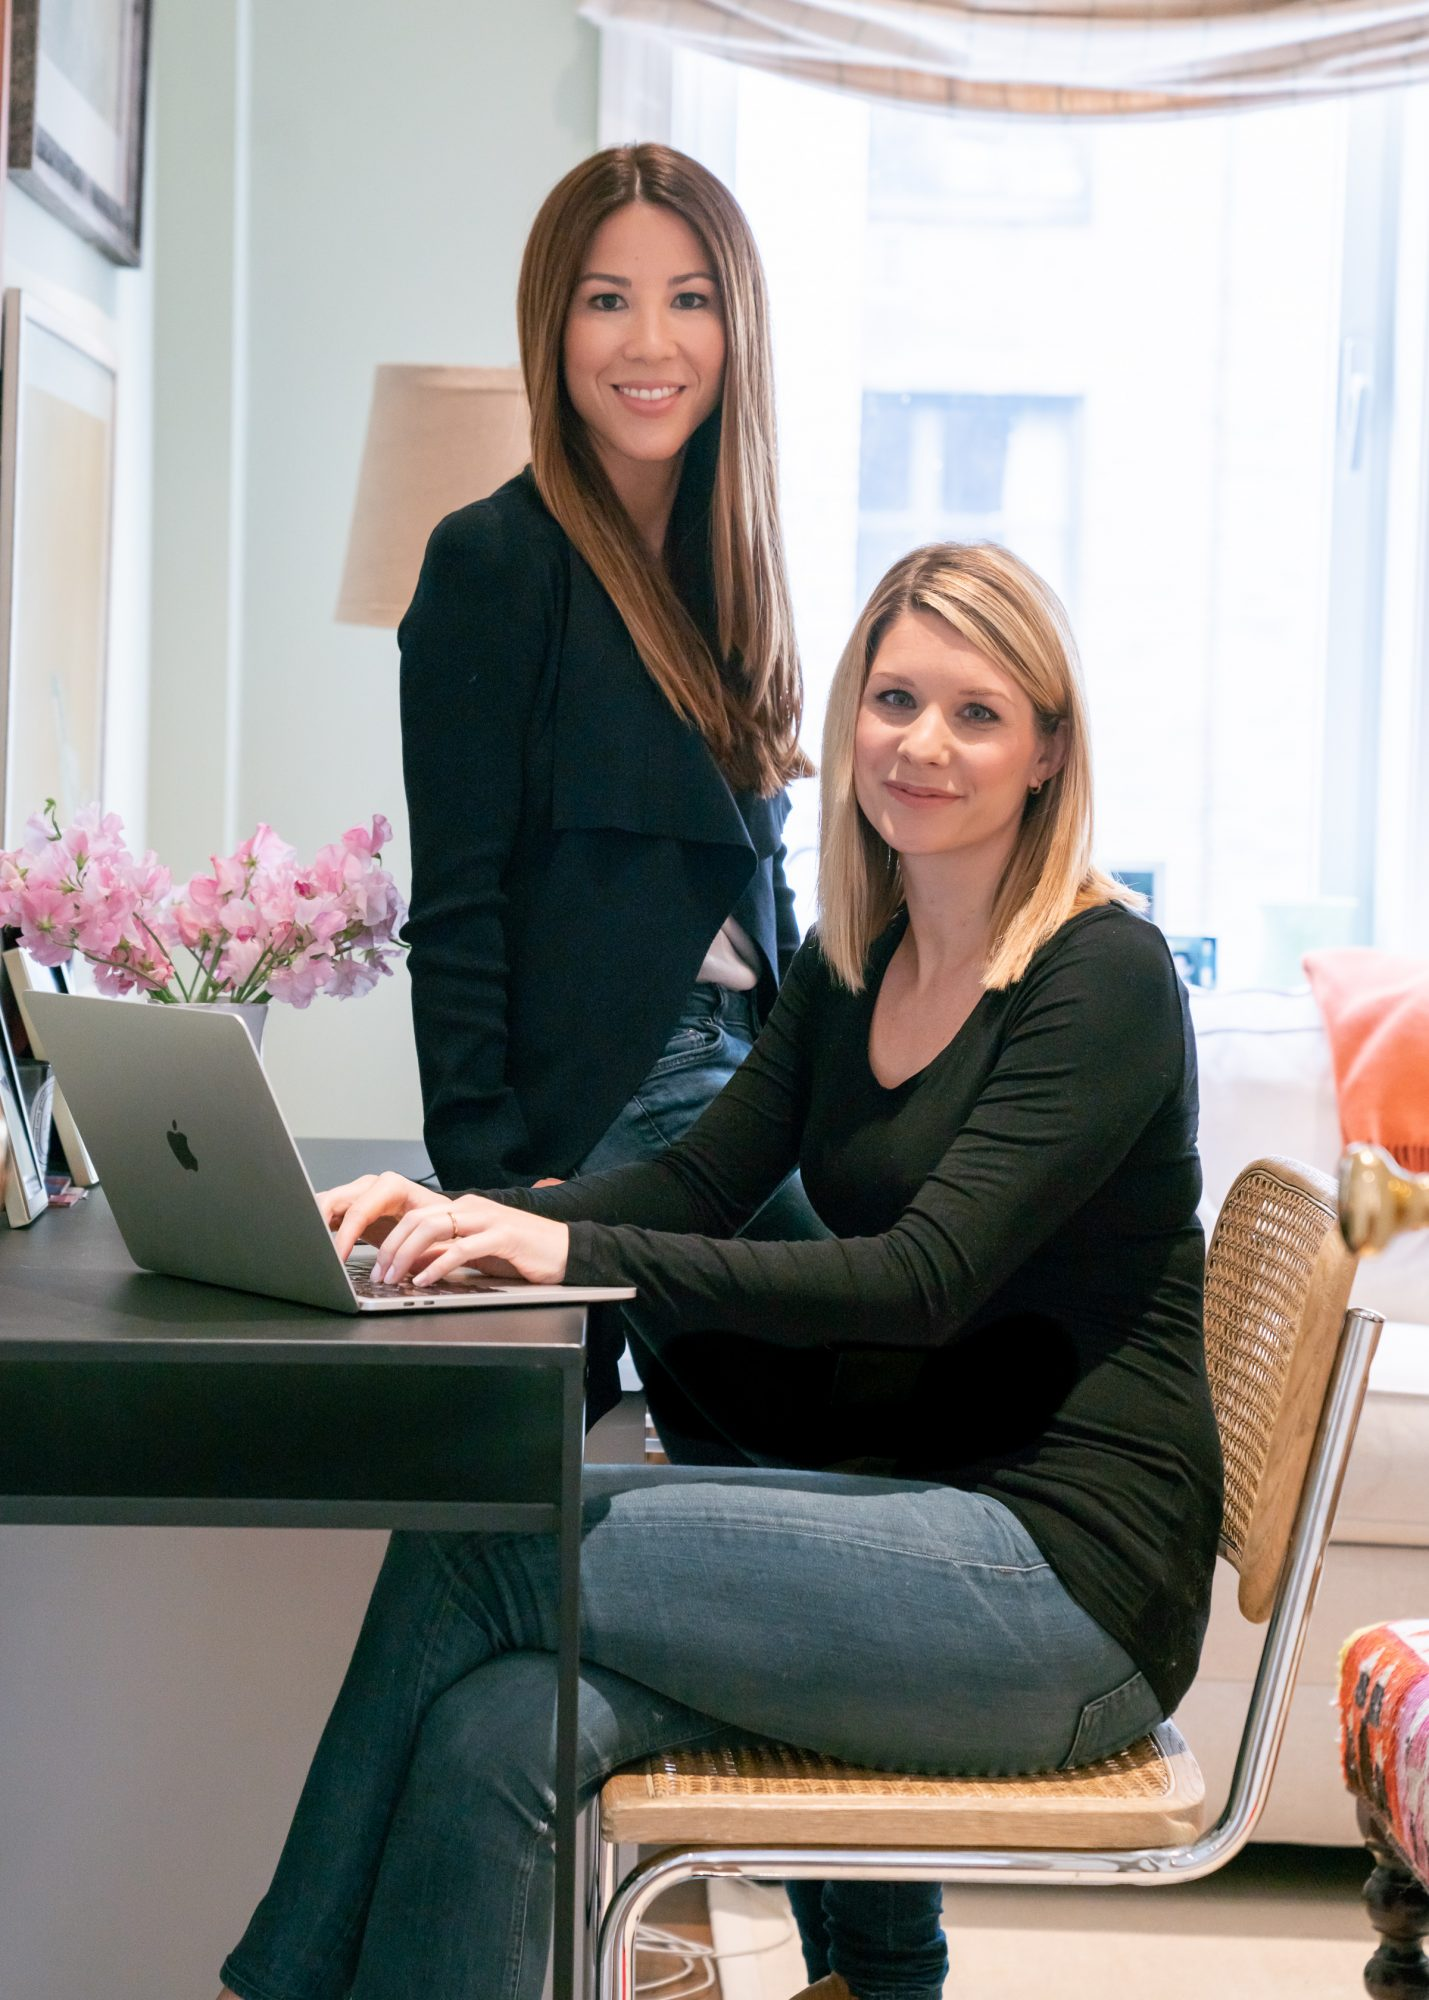 Jet.com Alums Want to Harness the E-commerce Power of Facebook Mom Groups